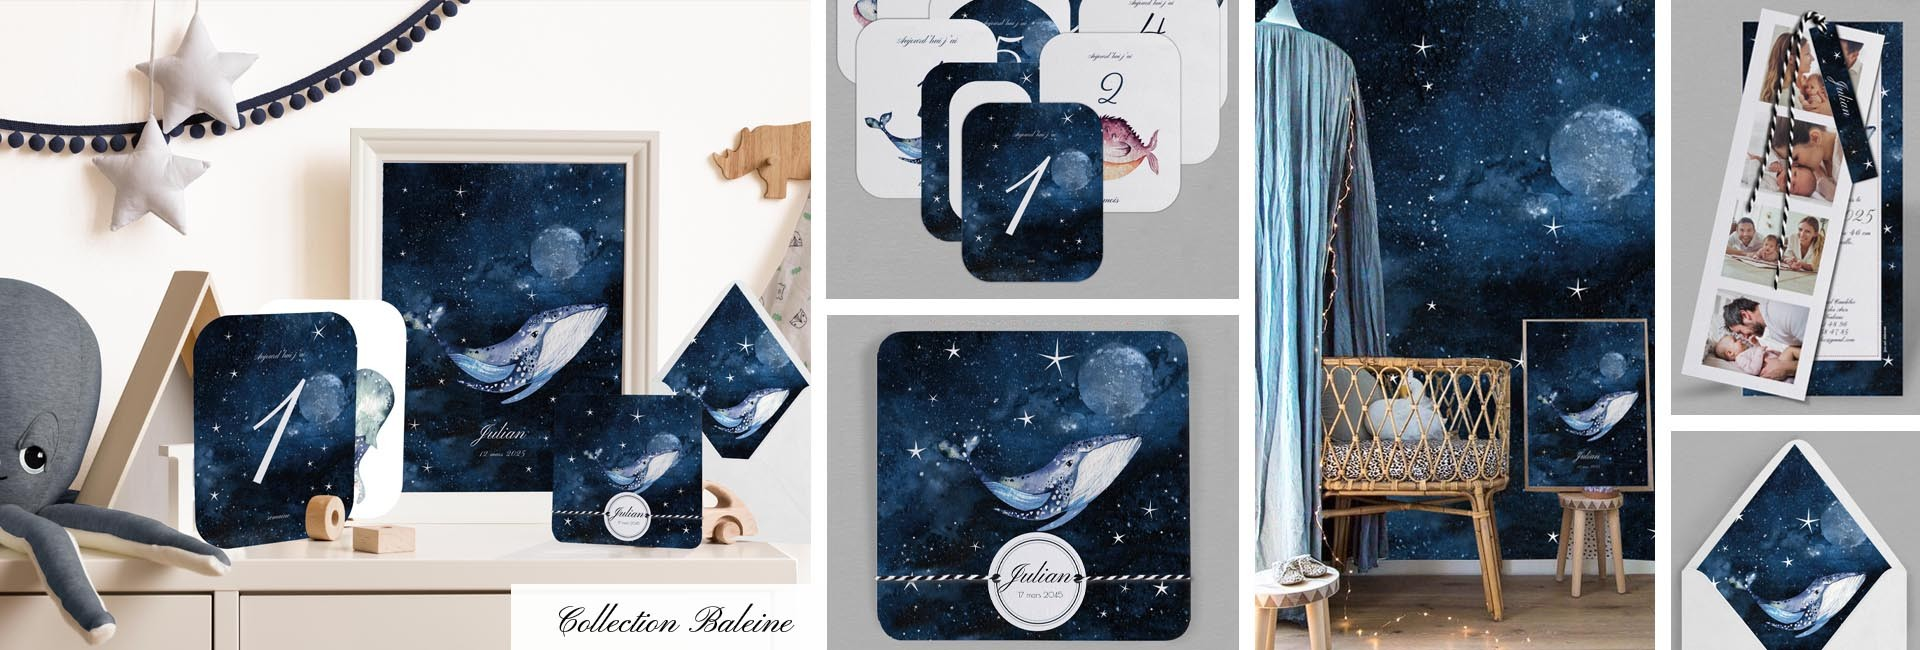 Faire part naissance Collection Baleine